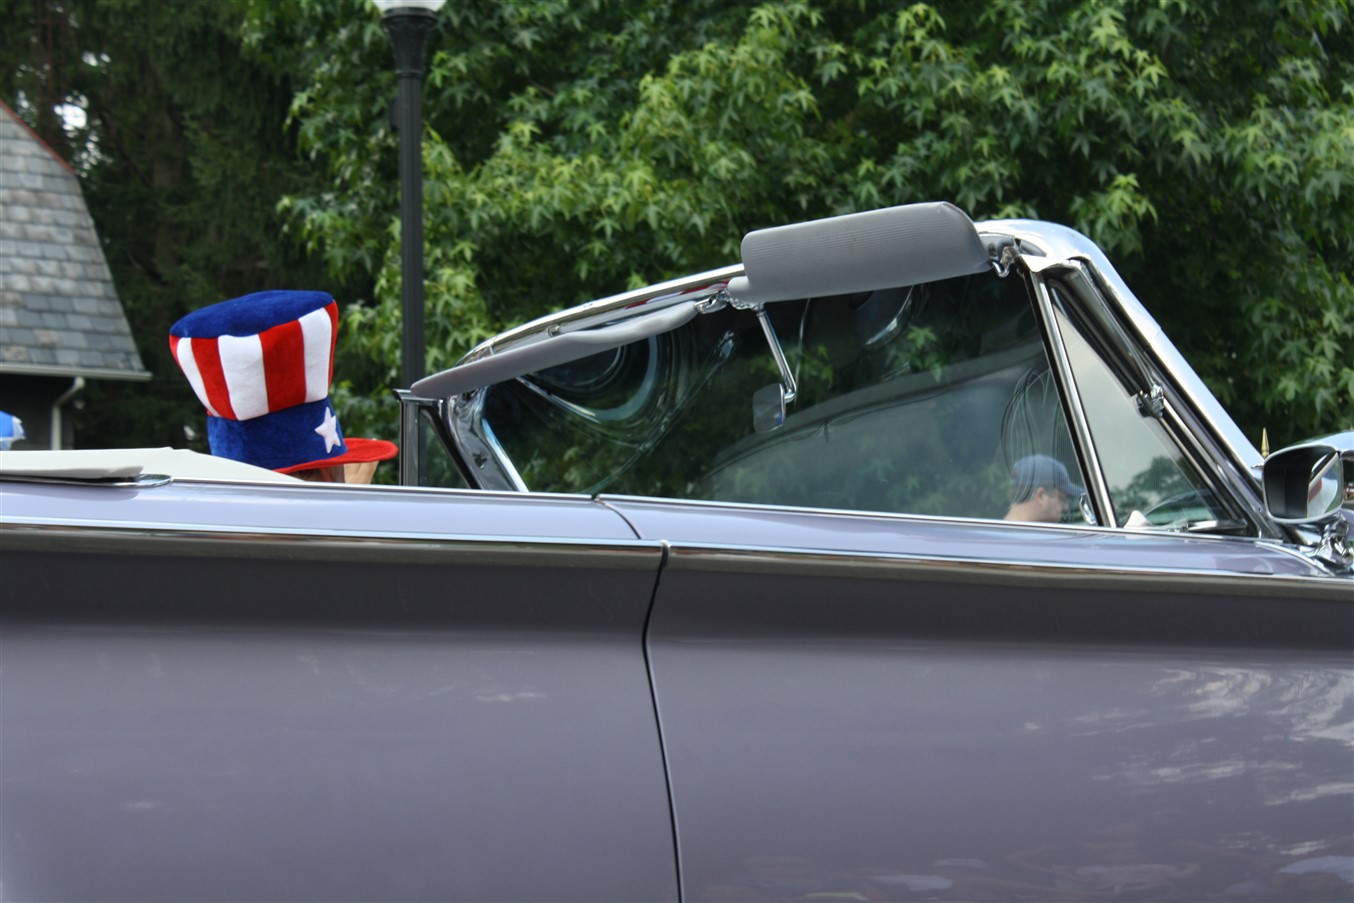 2010 07 05  Canfield Independence Day Parade 65.jpg